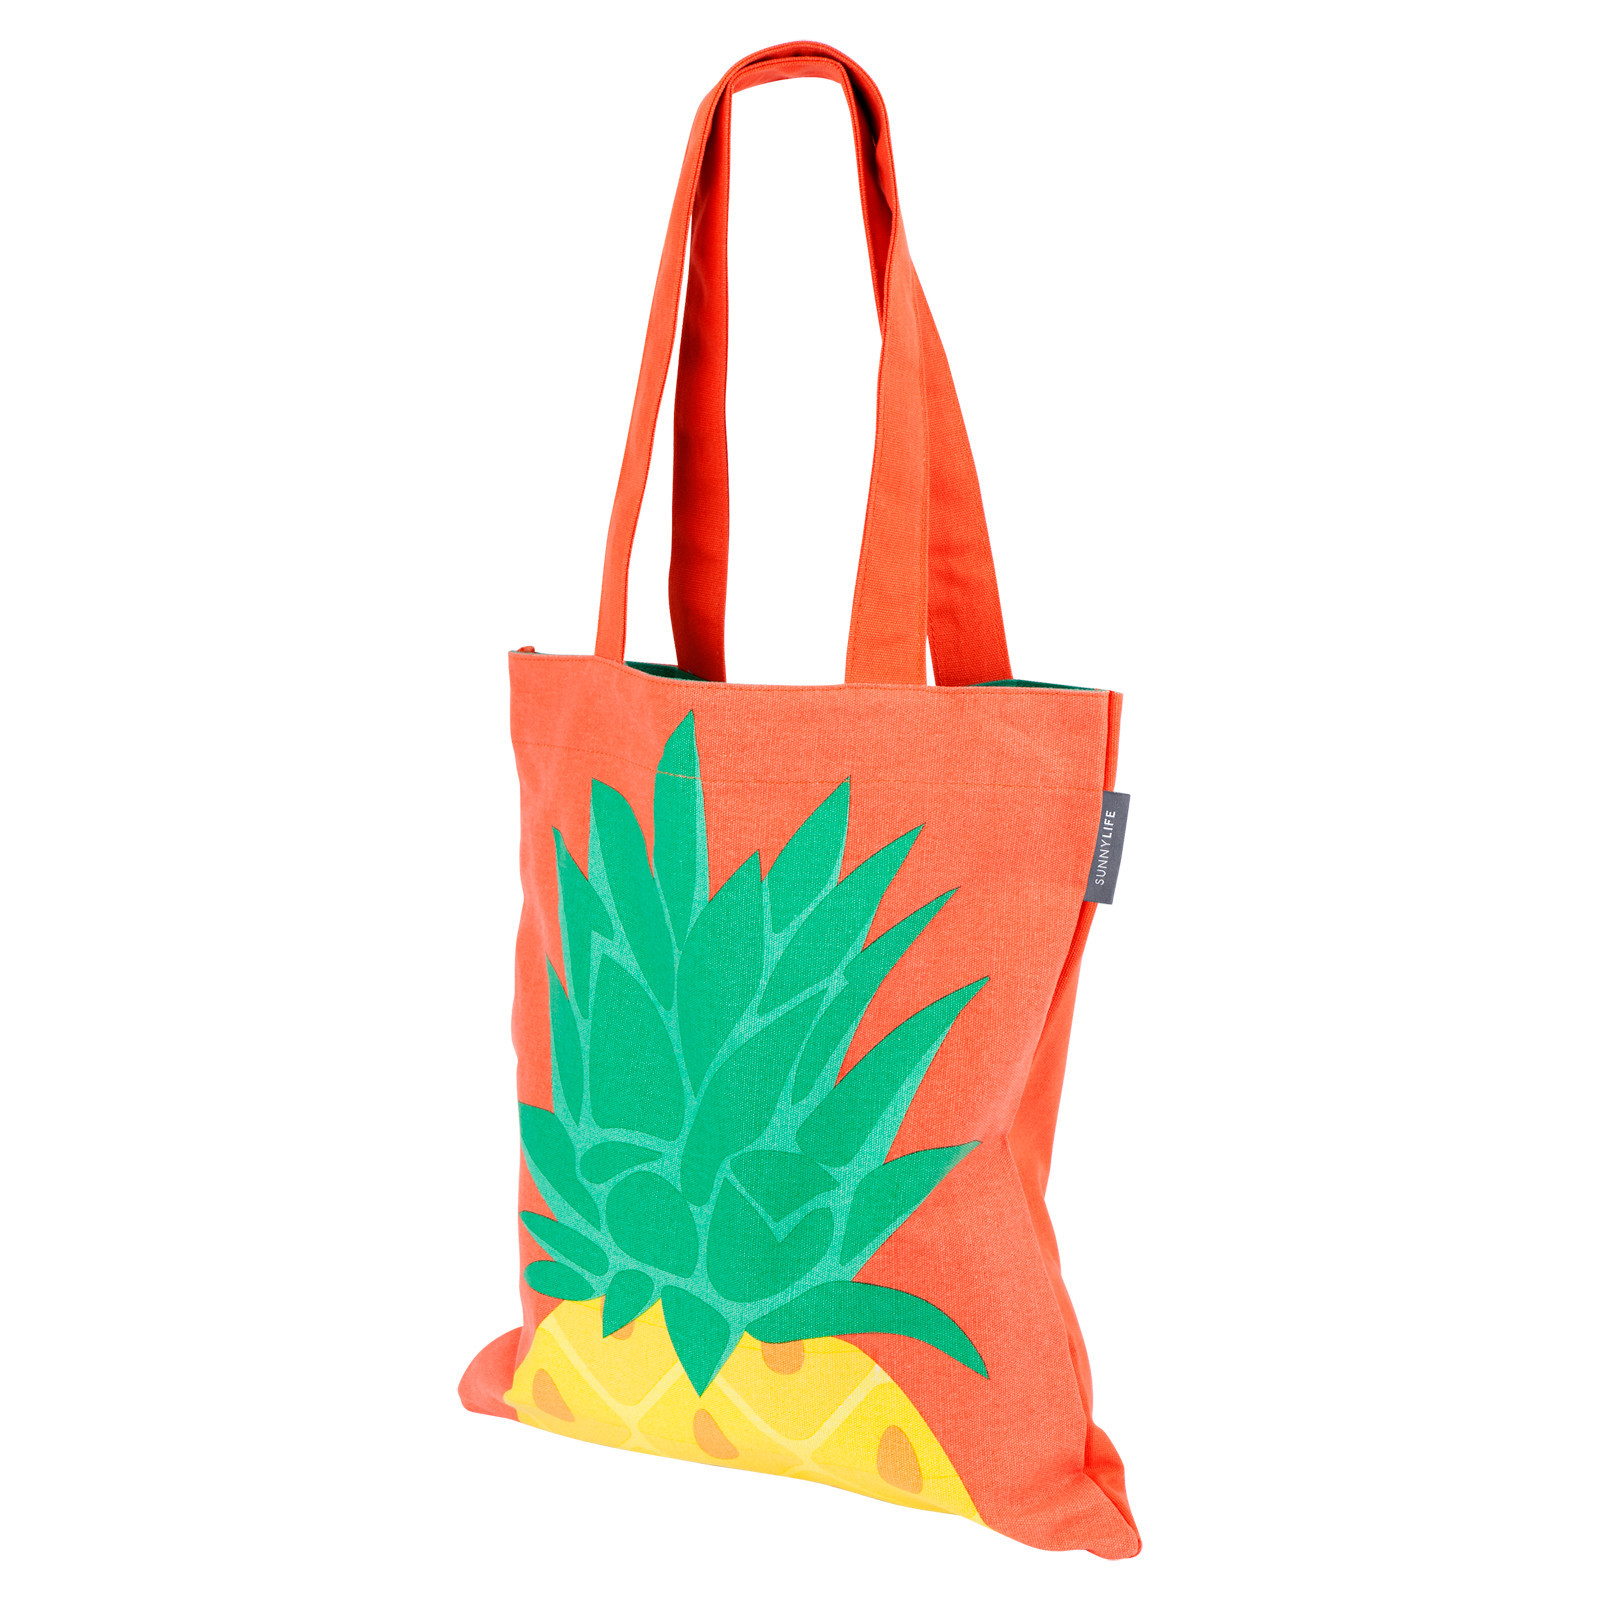 Bag Orange Cotton Tote Bag With Pineapple Print - Cool Pineapple f8b5c068a0a5c